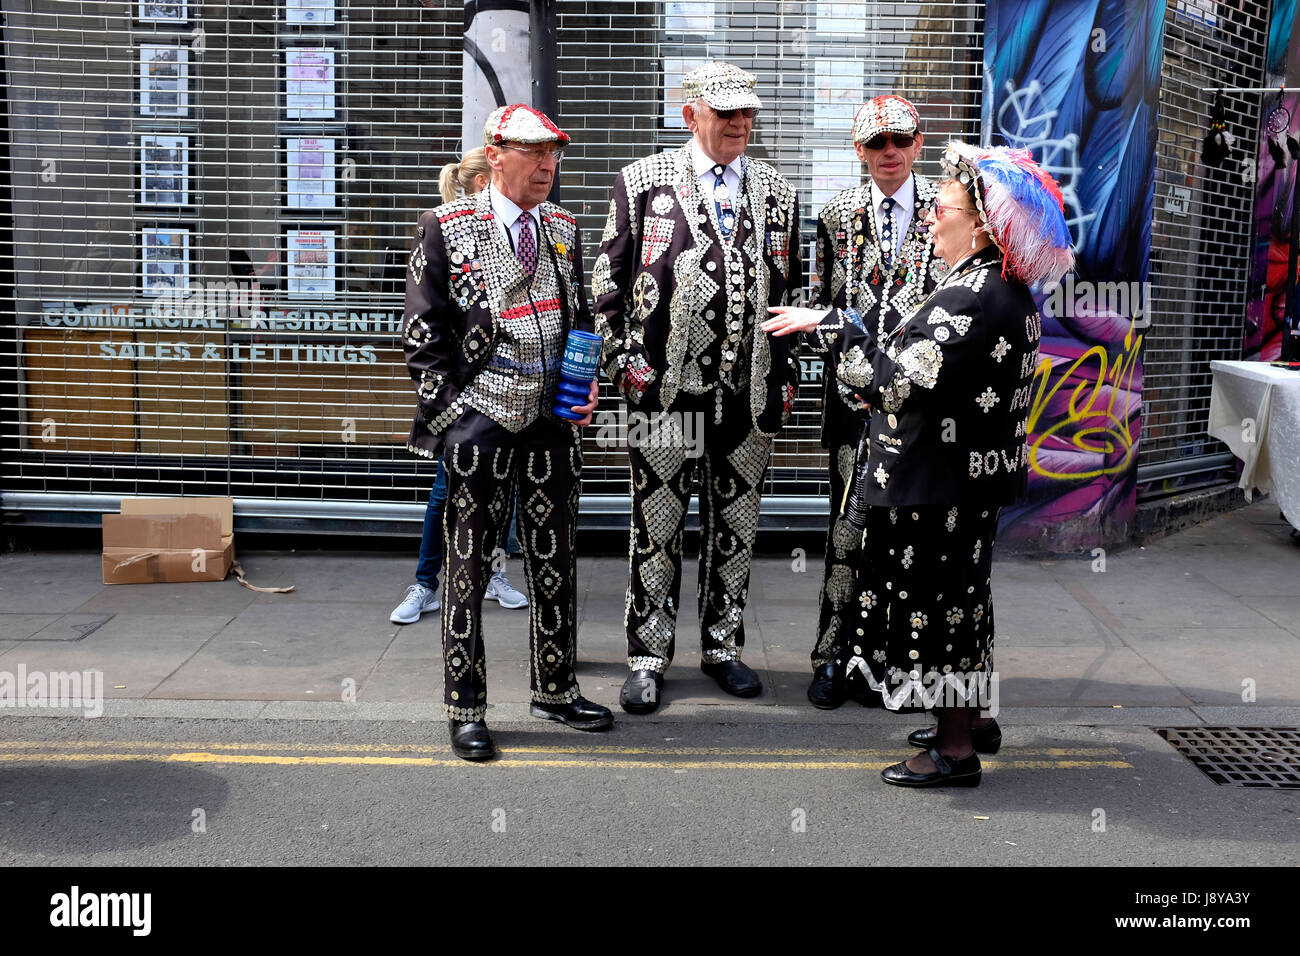 The 'Pearlies' of London. The Pearly Kings and Queens are a charitable organisation dating back to the 19th century Stock Photo